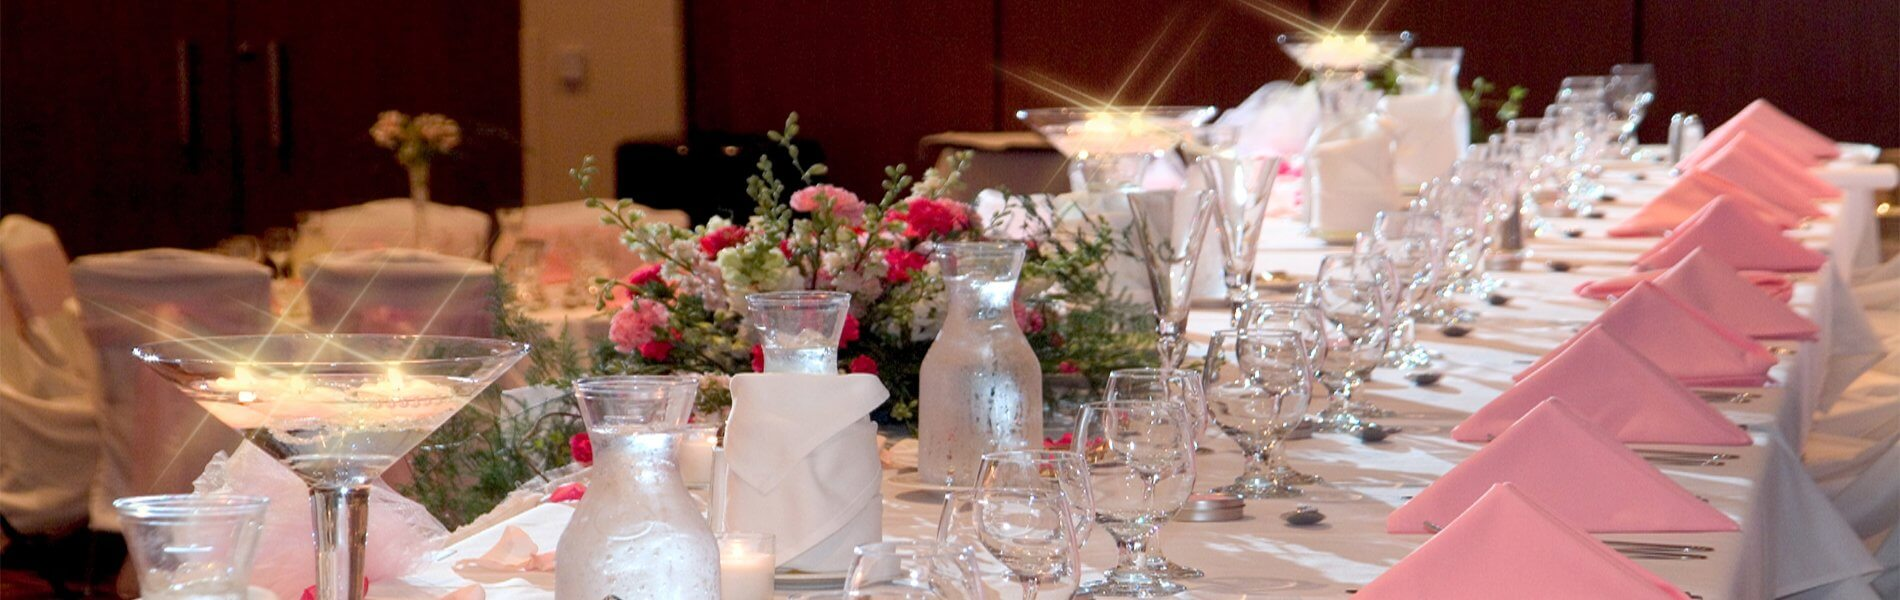 Elegant wedding table settings white with pink accents